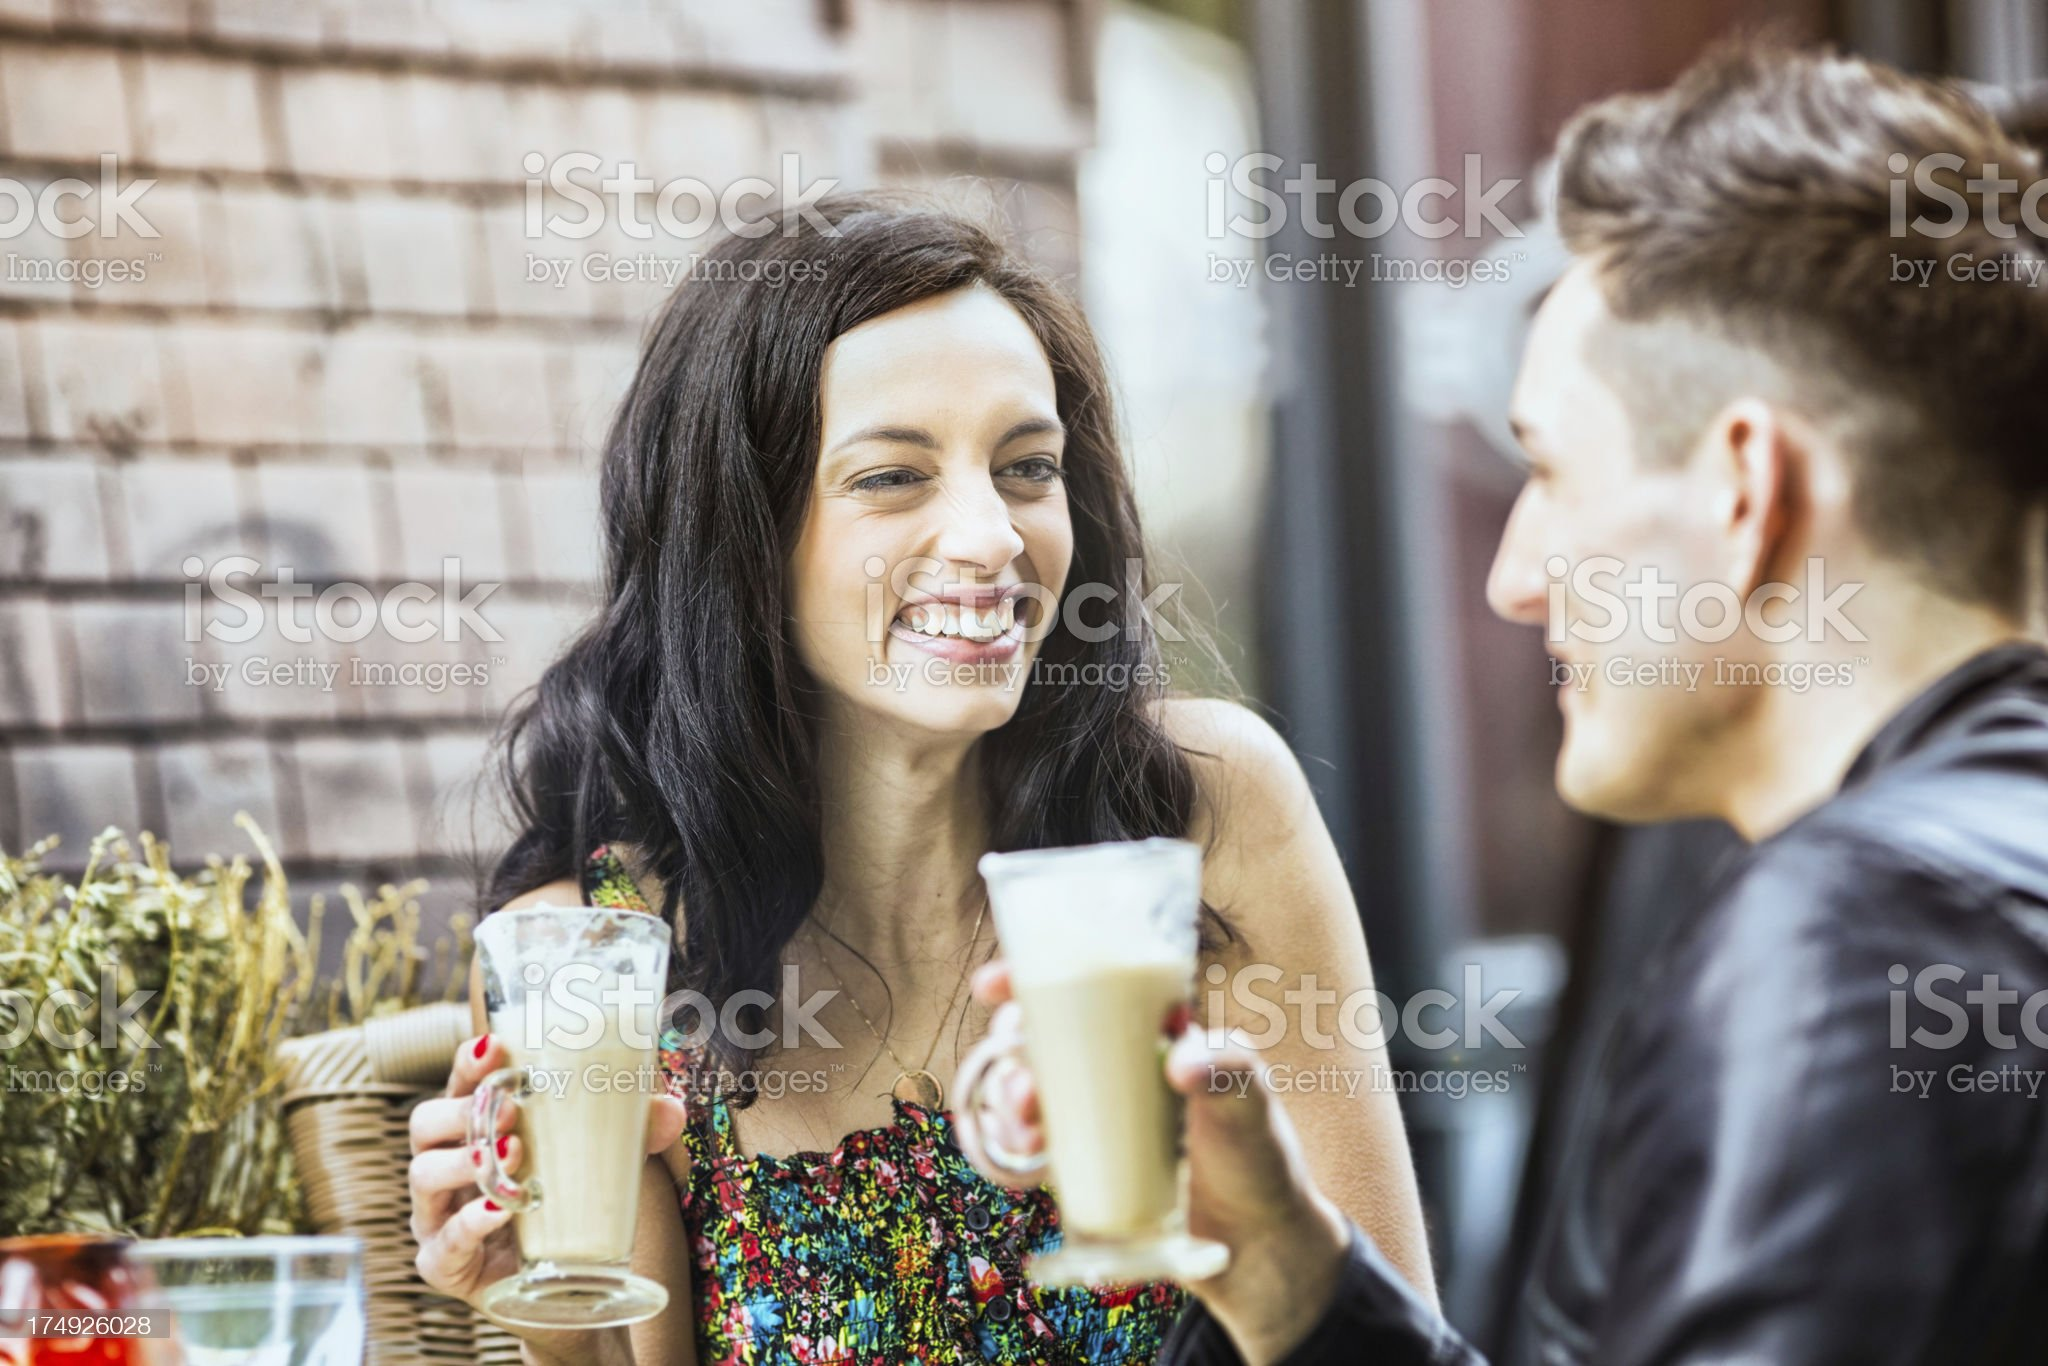 Love connection over Lattes in Berlin Cafe royalty-free stock photo